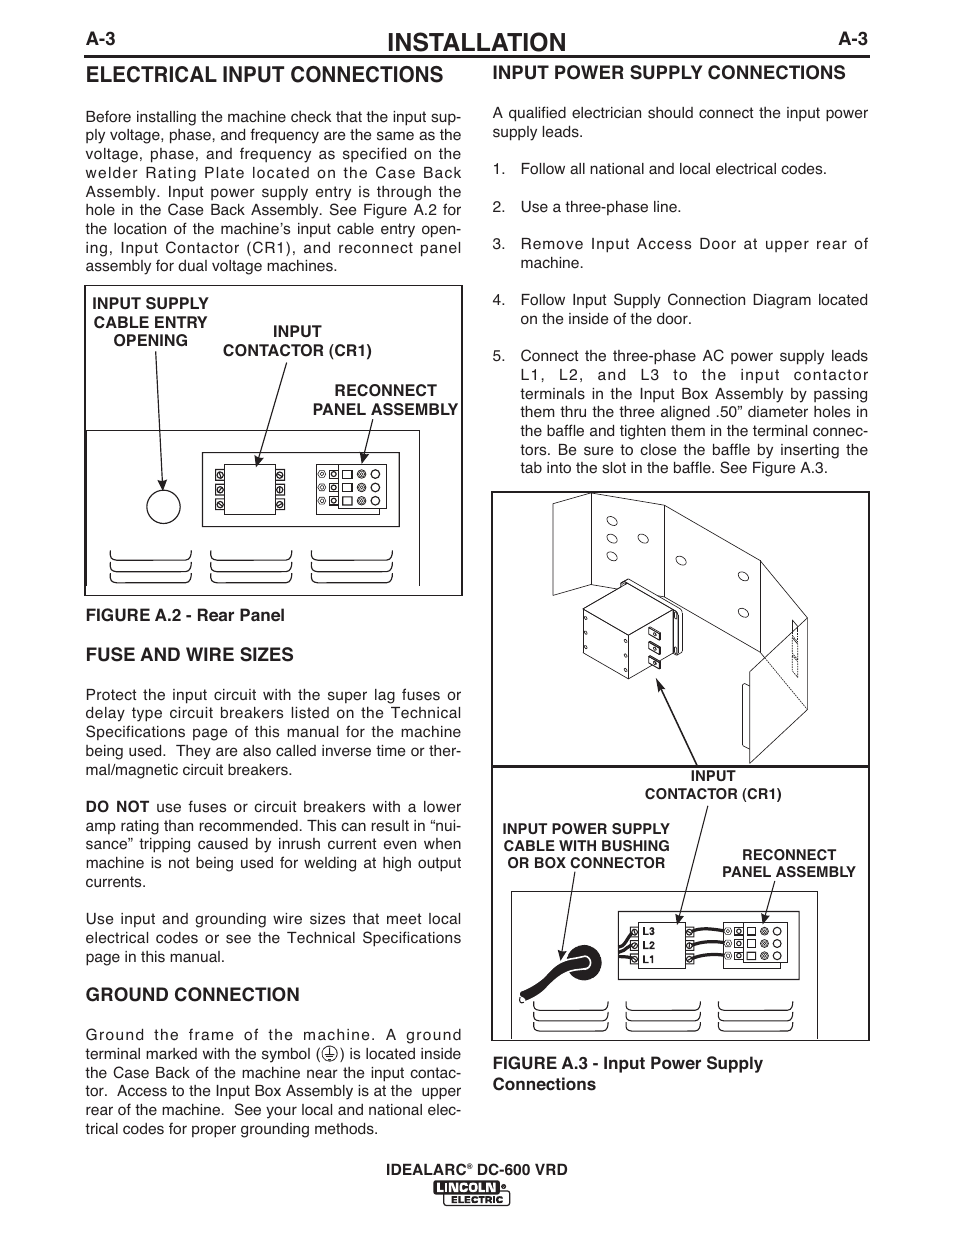 idealarc welder diagram koala food web installation electrical input connections lincoln electric im10018 dc 600 vrd user manual page 11 55